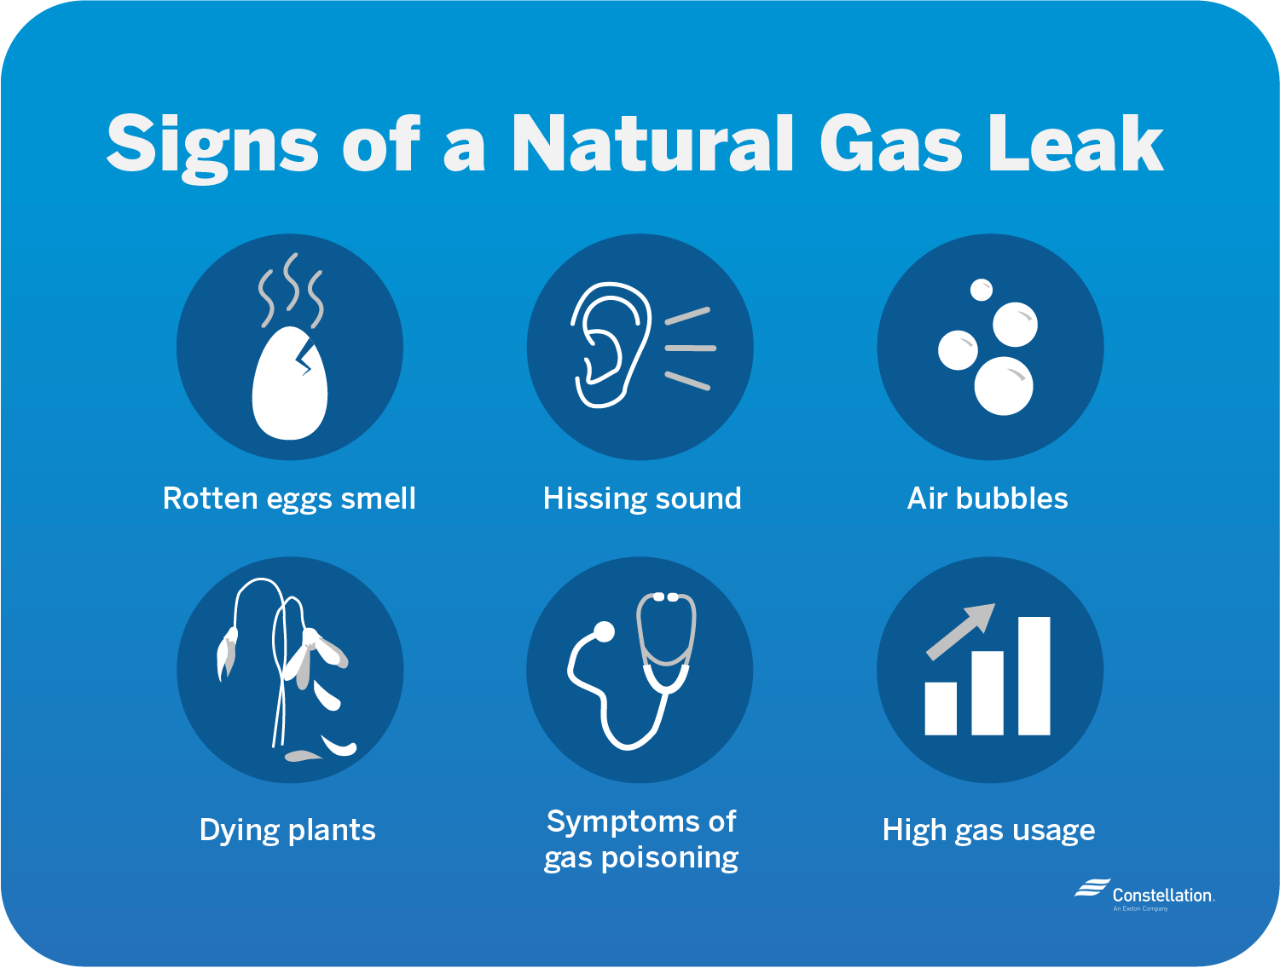 Rotten eggs smell, hissing sounds, air bubbles in standing water outdoors, dying plants, symptoms of gas poisoning, and high gas usage all can indicate a natural gas leak.